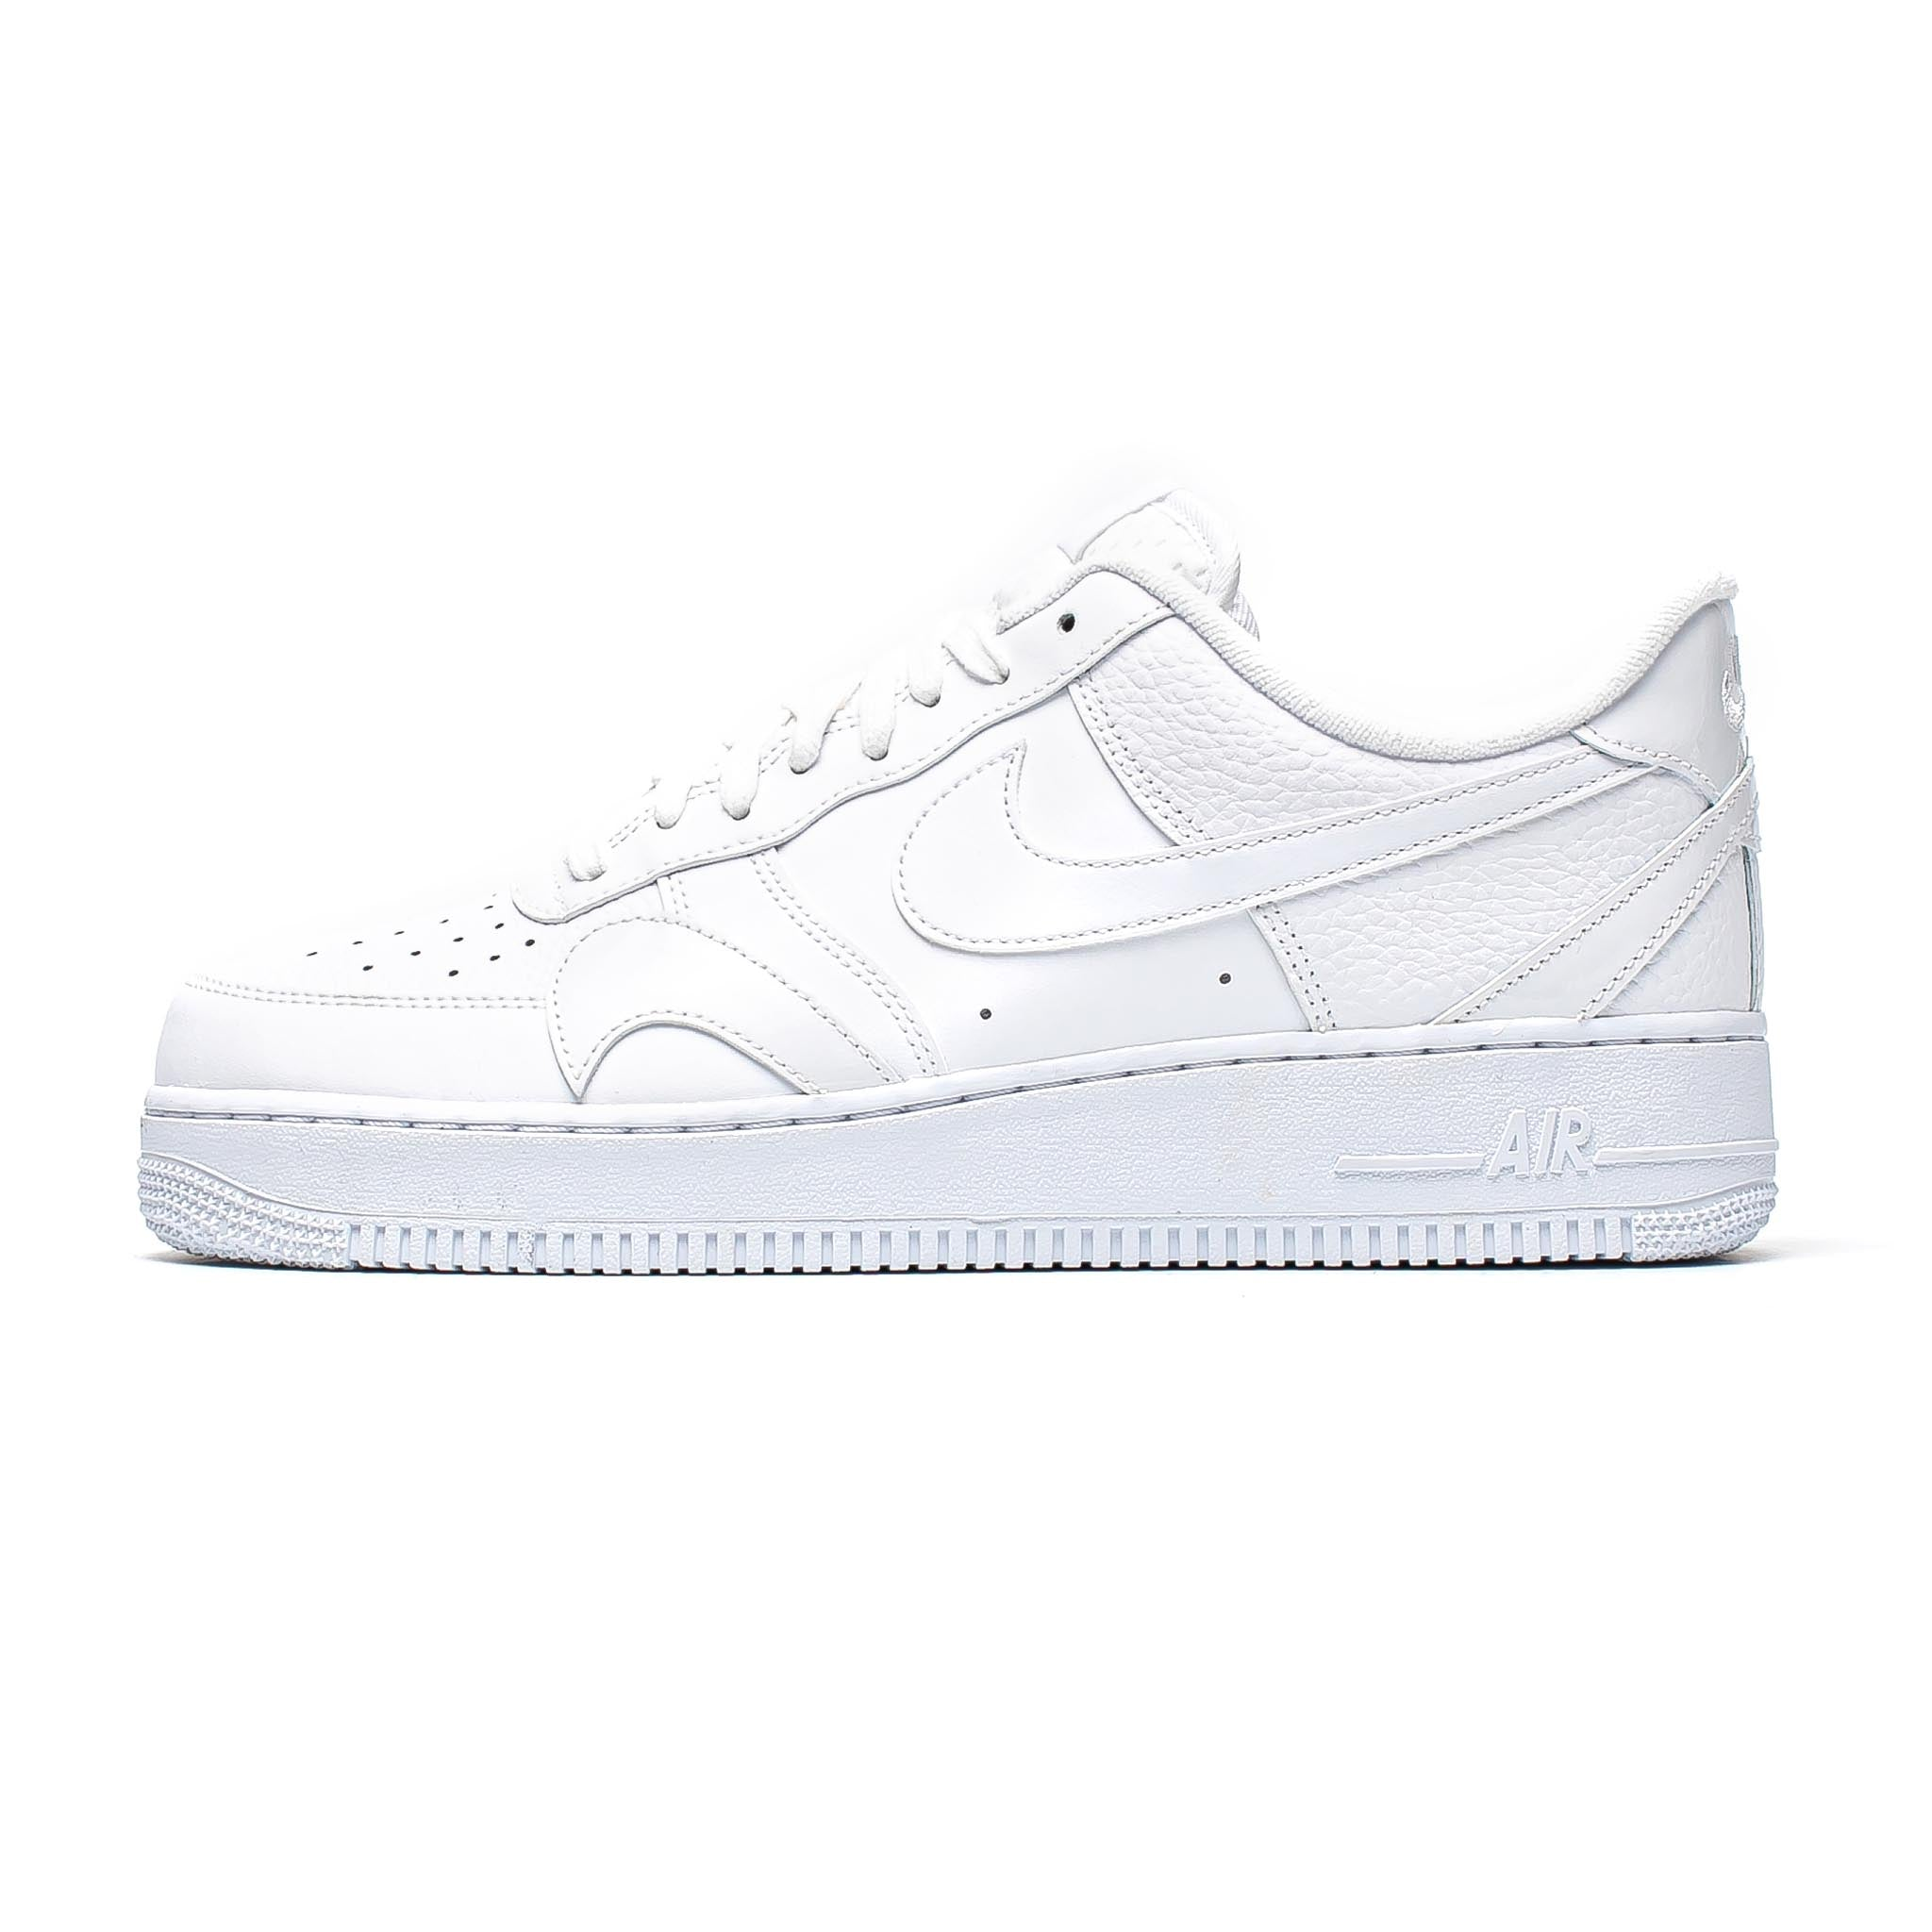 Nike Air Force 1 '07 LV8 2 'Misplaced Swooshes' White